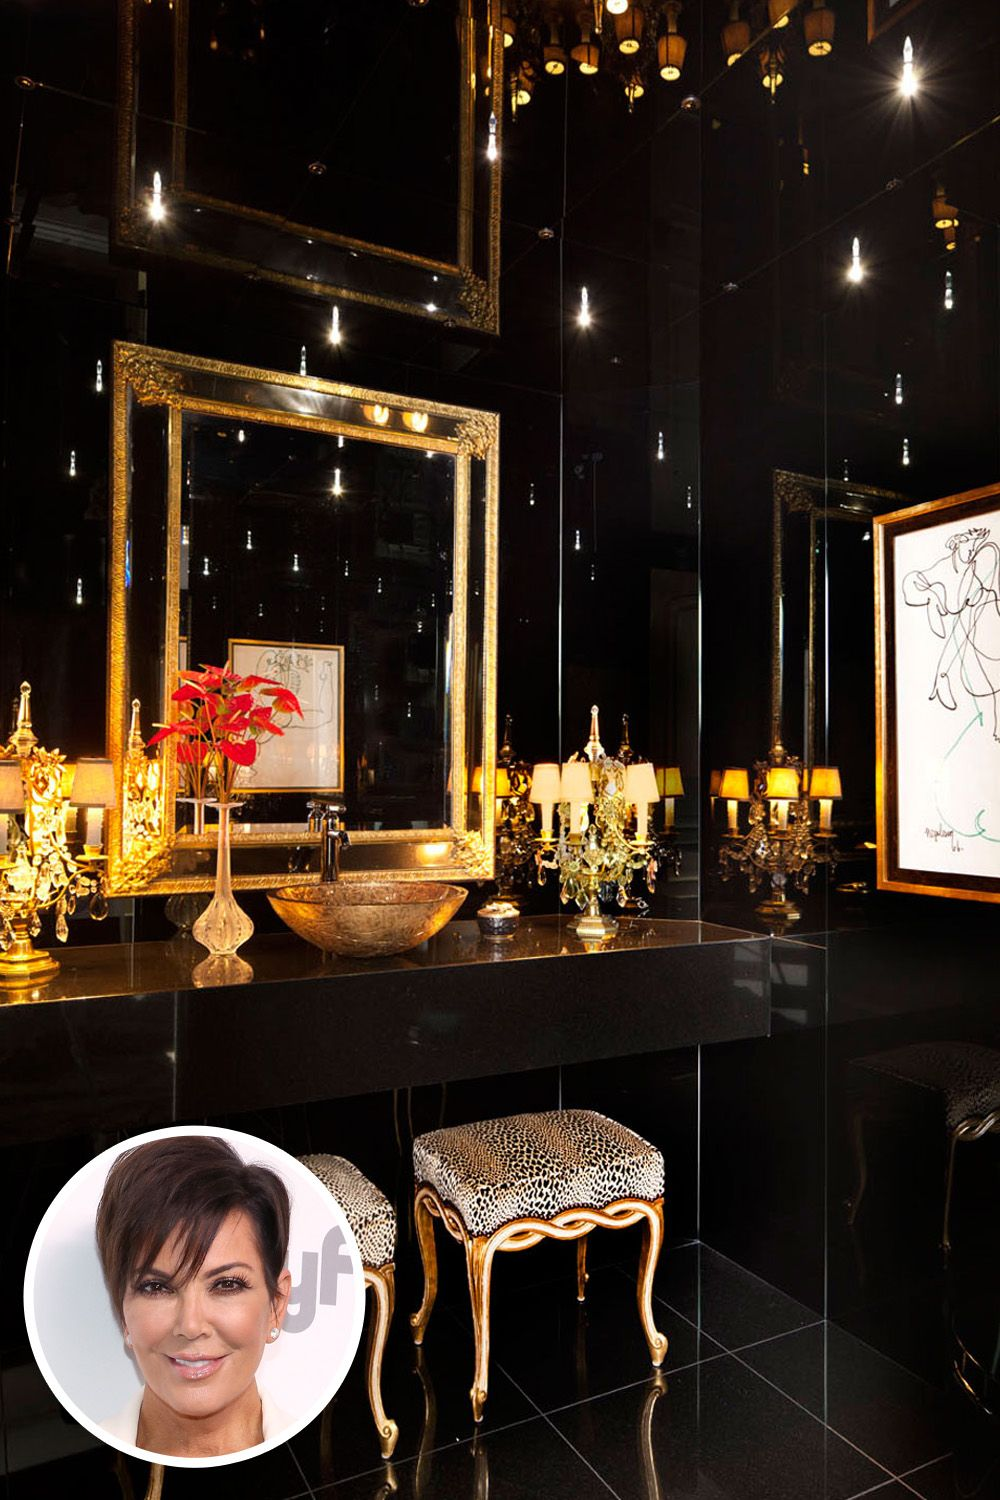 Celebrity Bathrooms   Most Insane Celebrity Bathrooms: Kris Jenner, Marilyn  Monroe, Lady Gaga